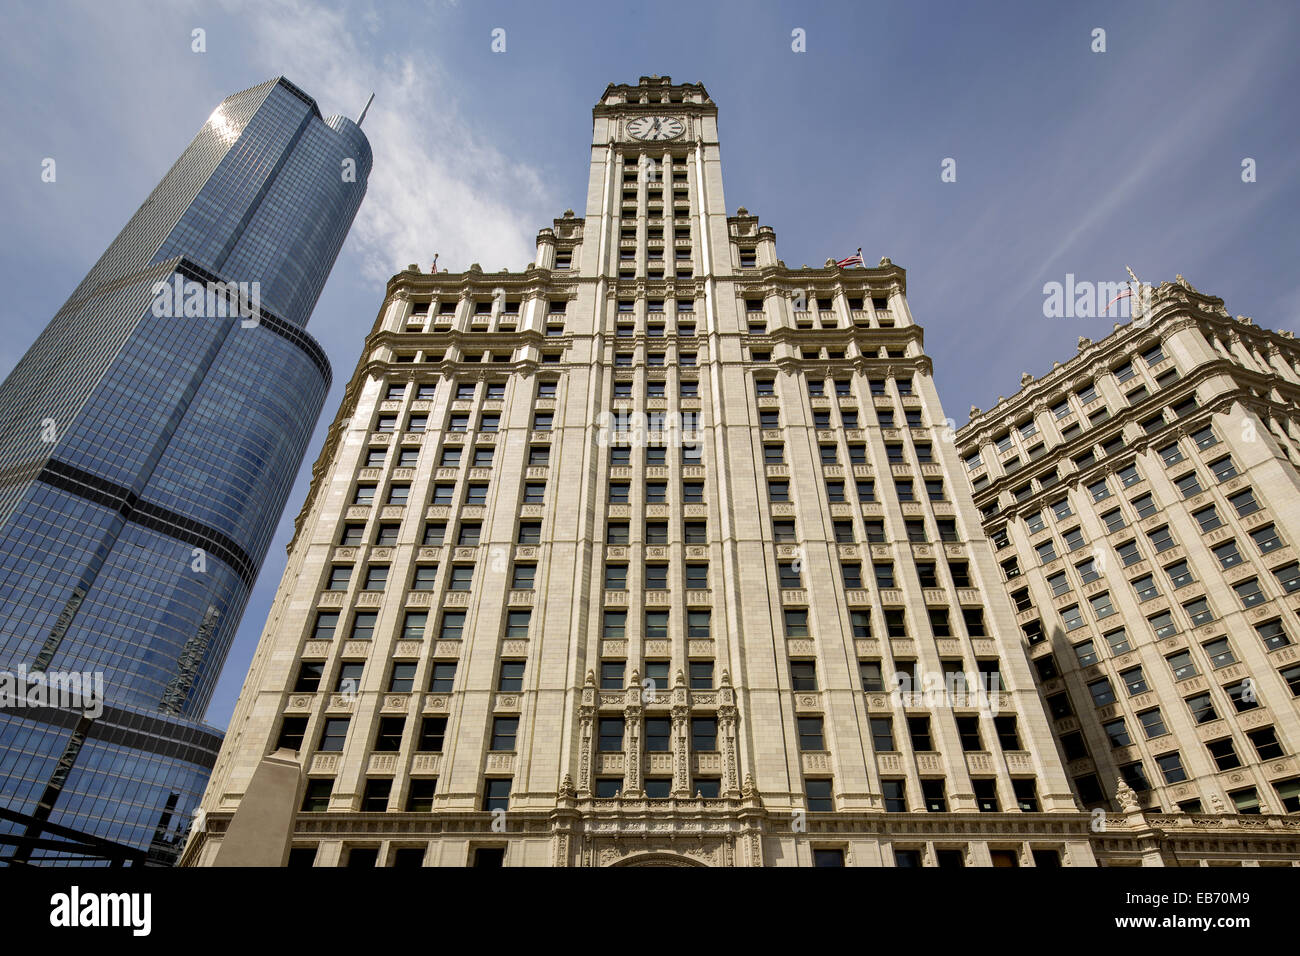 Wrigley Building (Graham, Anderson, Probst & White, 1921-1924), Trump Tower on left, Chicago, Illinois, USA - Stock Image